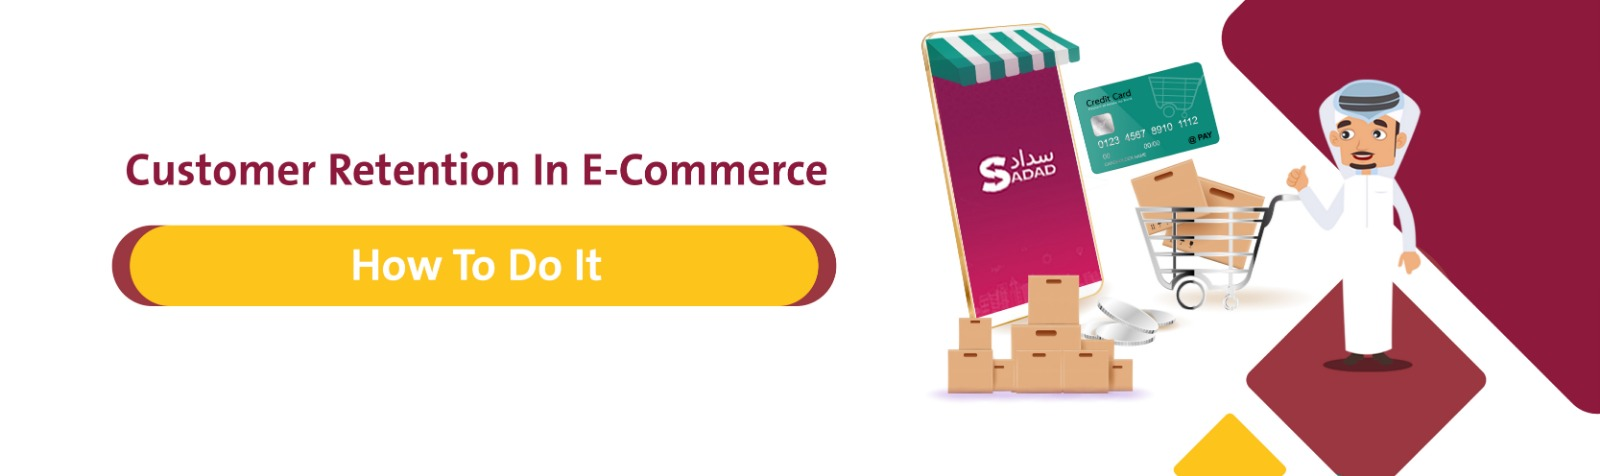 Customer Retention In E-Commerce: How To Do It - Sadad Payment Solutions - Sadad.qa - Banner Image